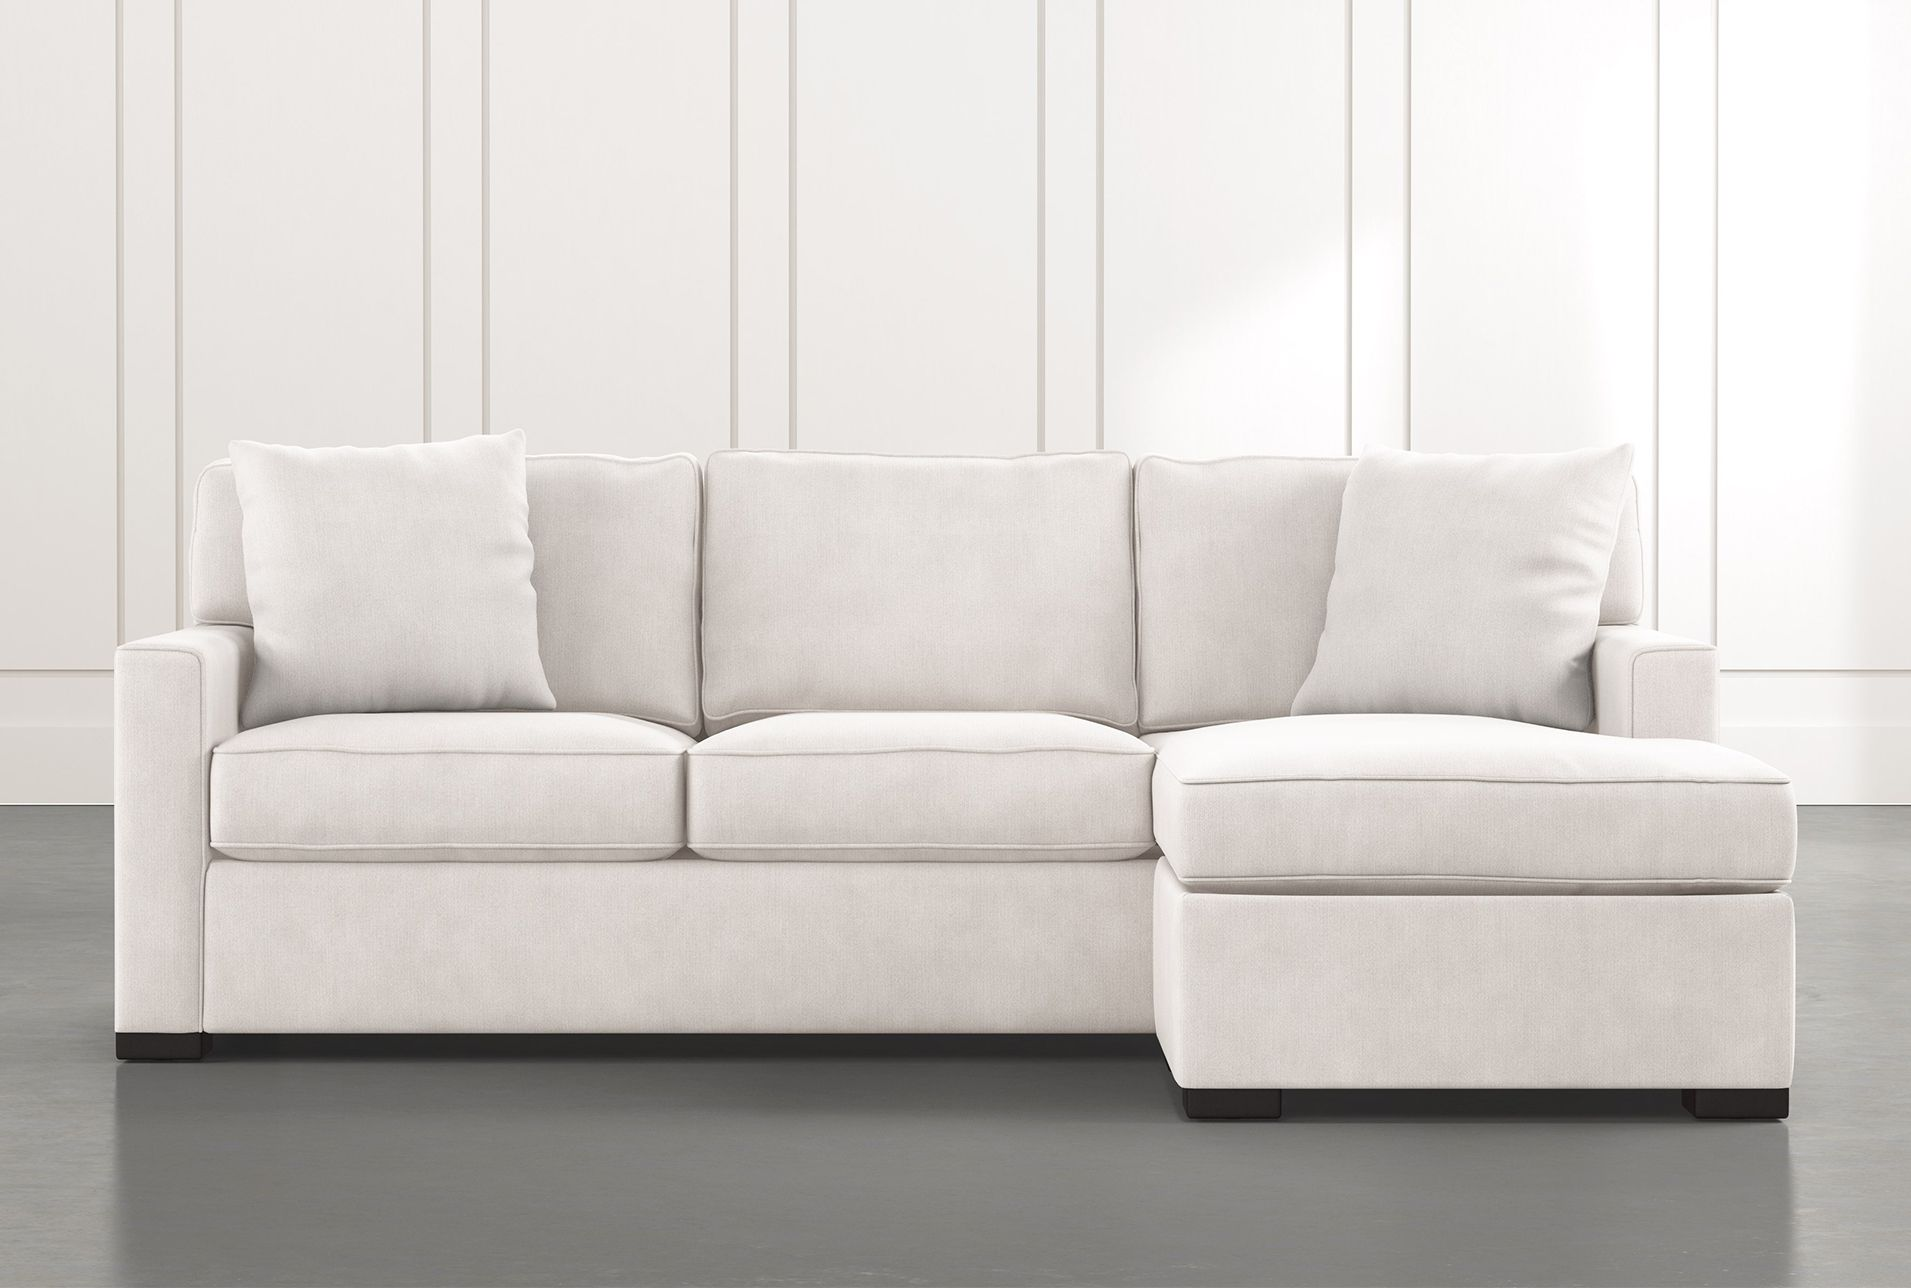 Sensational Taren Ii White Reversible Sofa Chaise Sleeper W Storage Gmtry Best Dining Table And Chair Ideas Images Gmtryco